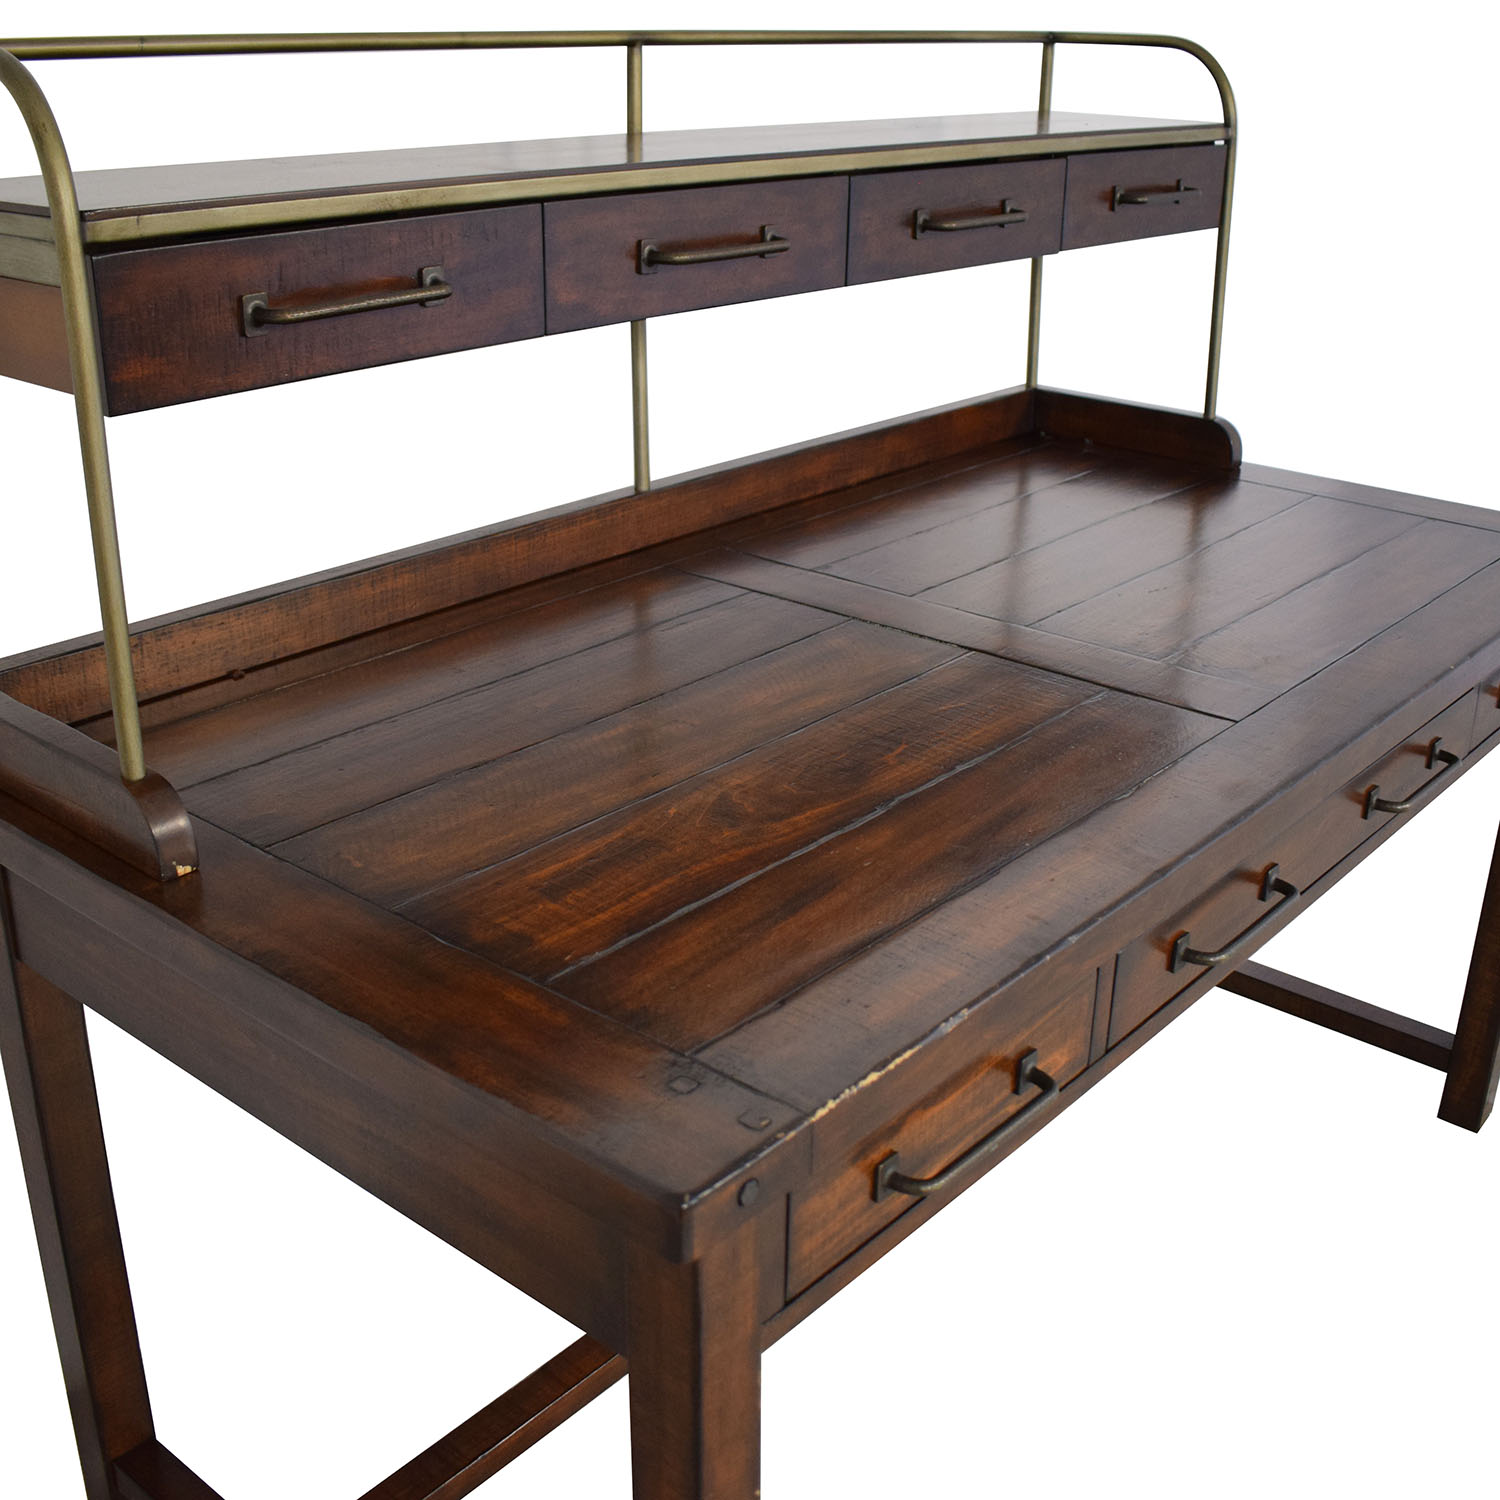 Pottery Barn Pottery Barn Benchwright Desk with Hutch discount